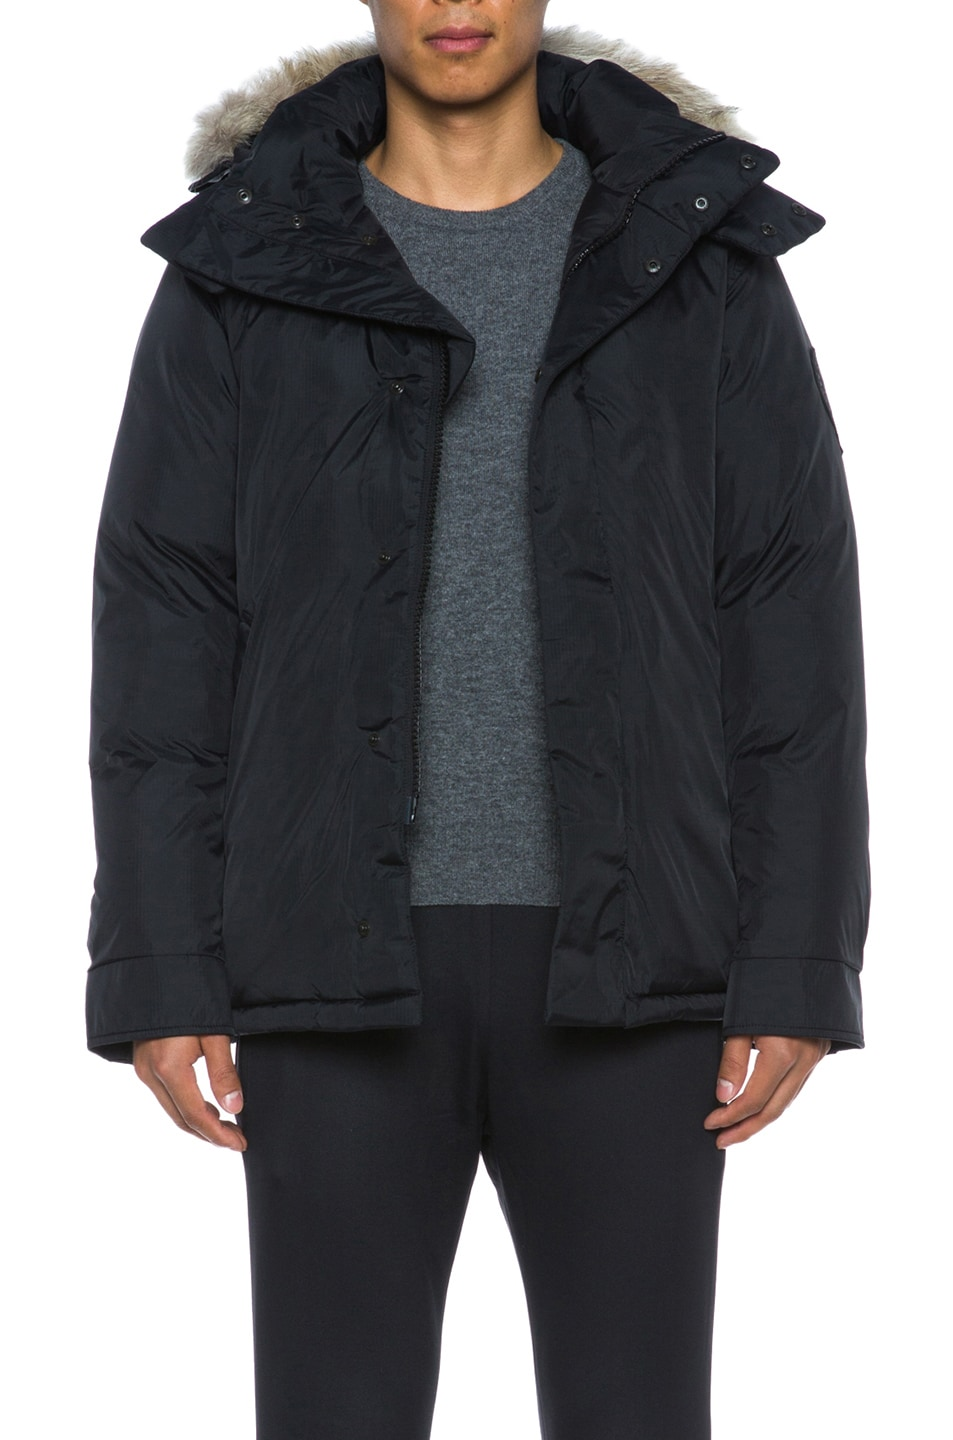 Where can I purchase Canada Goose Jacket in Toronto ...